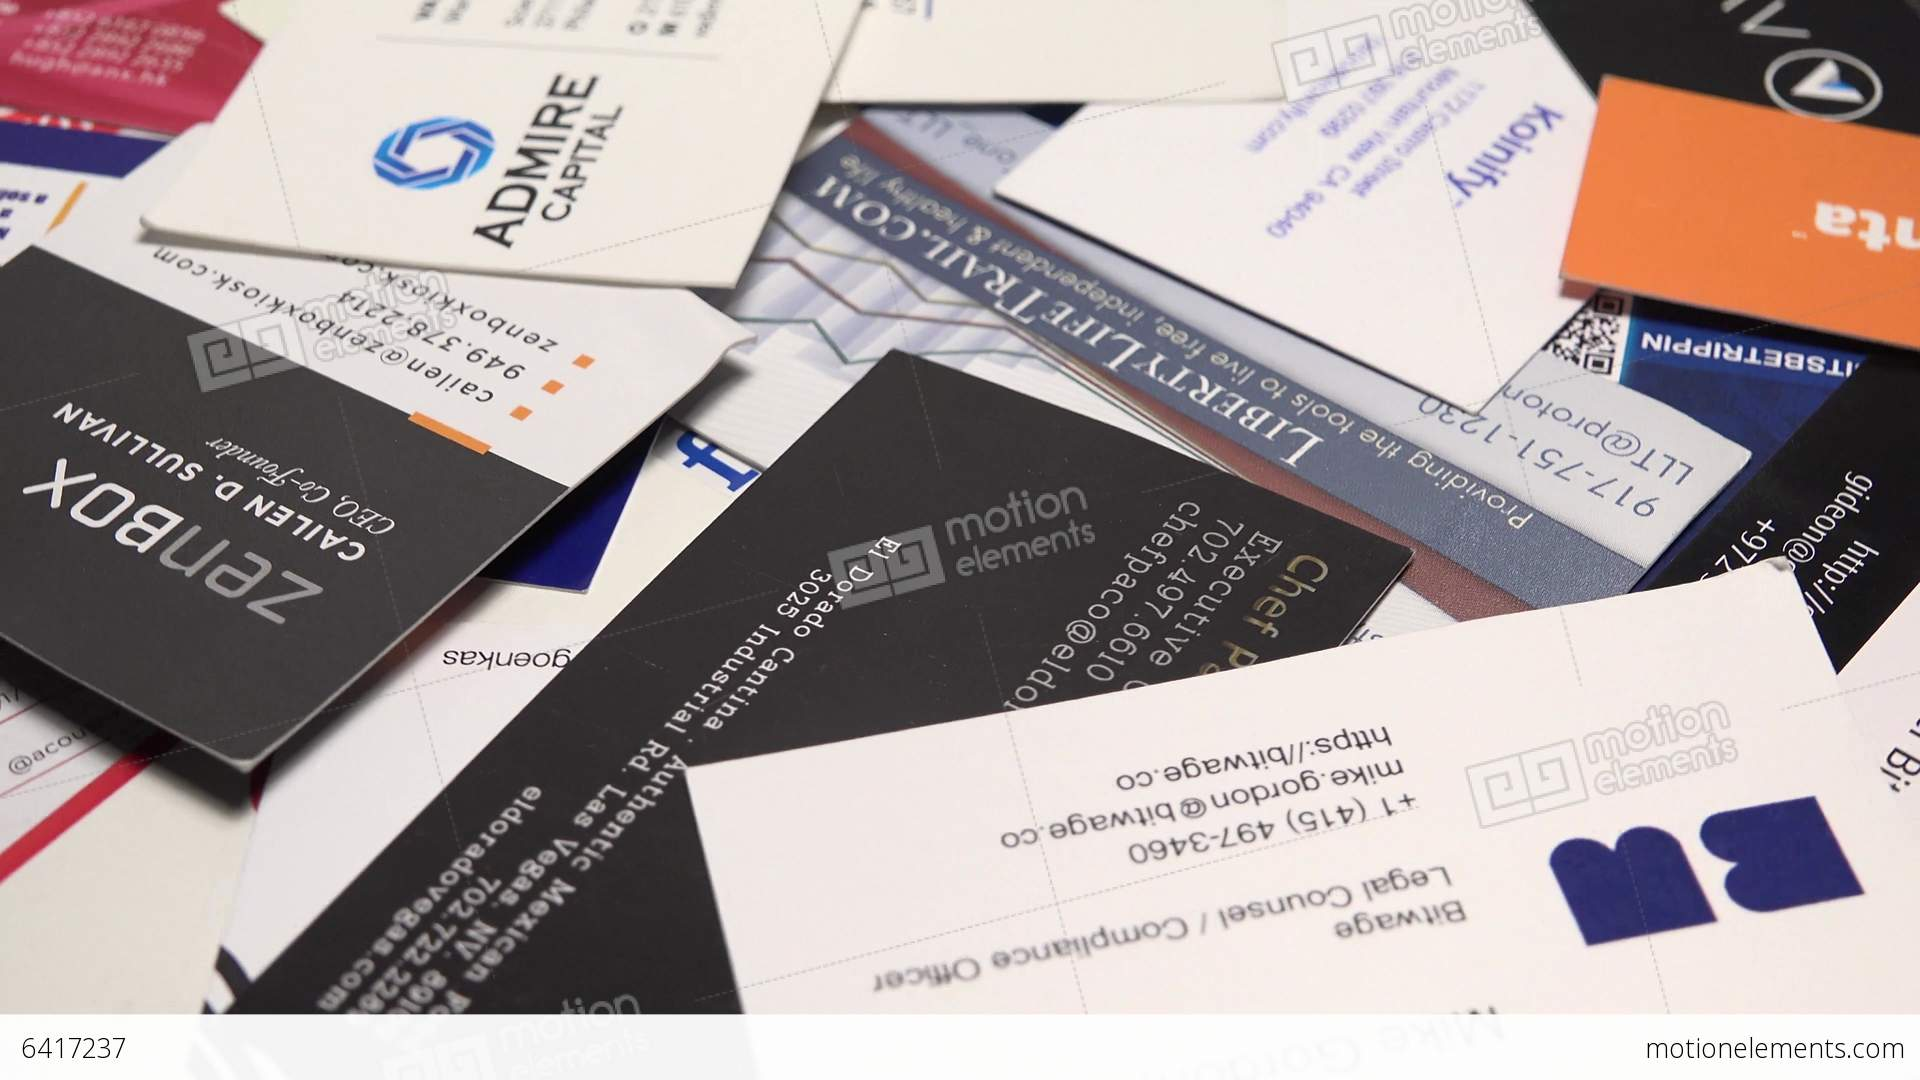 Print business cards kuwait gallery card design and card template beautiful video business card photos business card ideas variety of business cards stock video footage 6417237 reheart Images